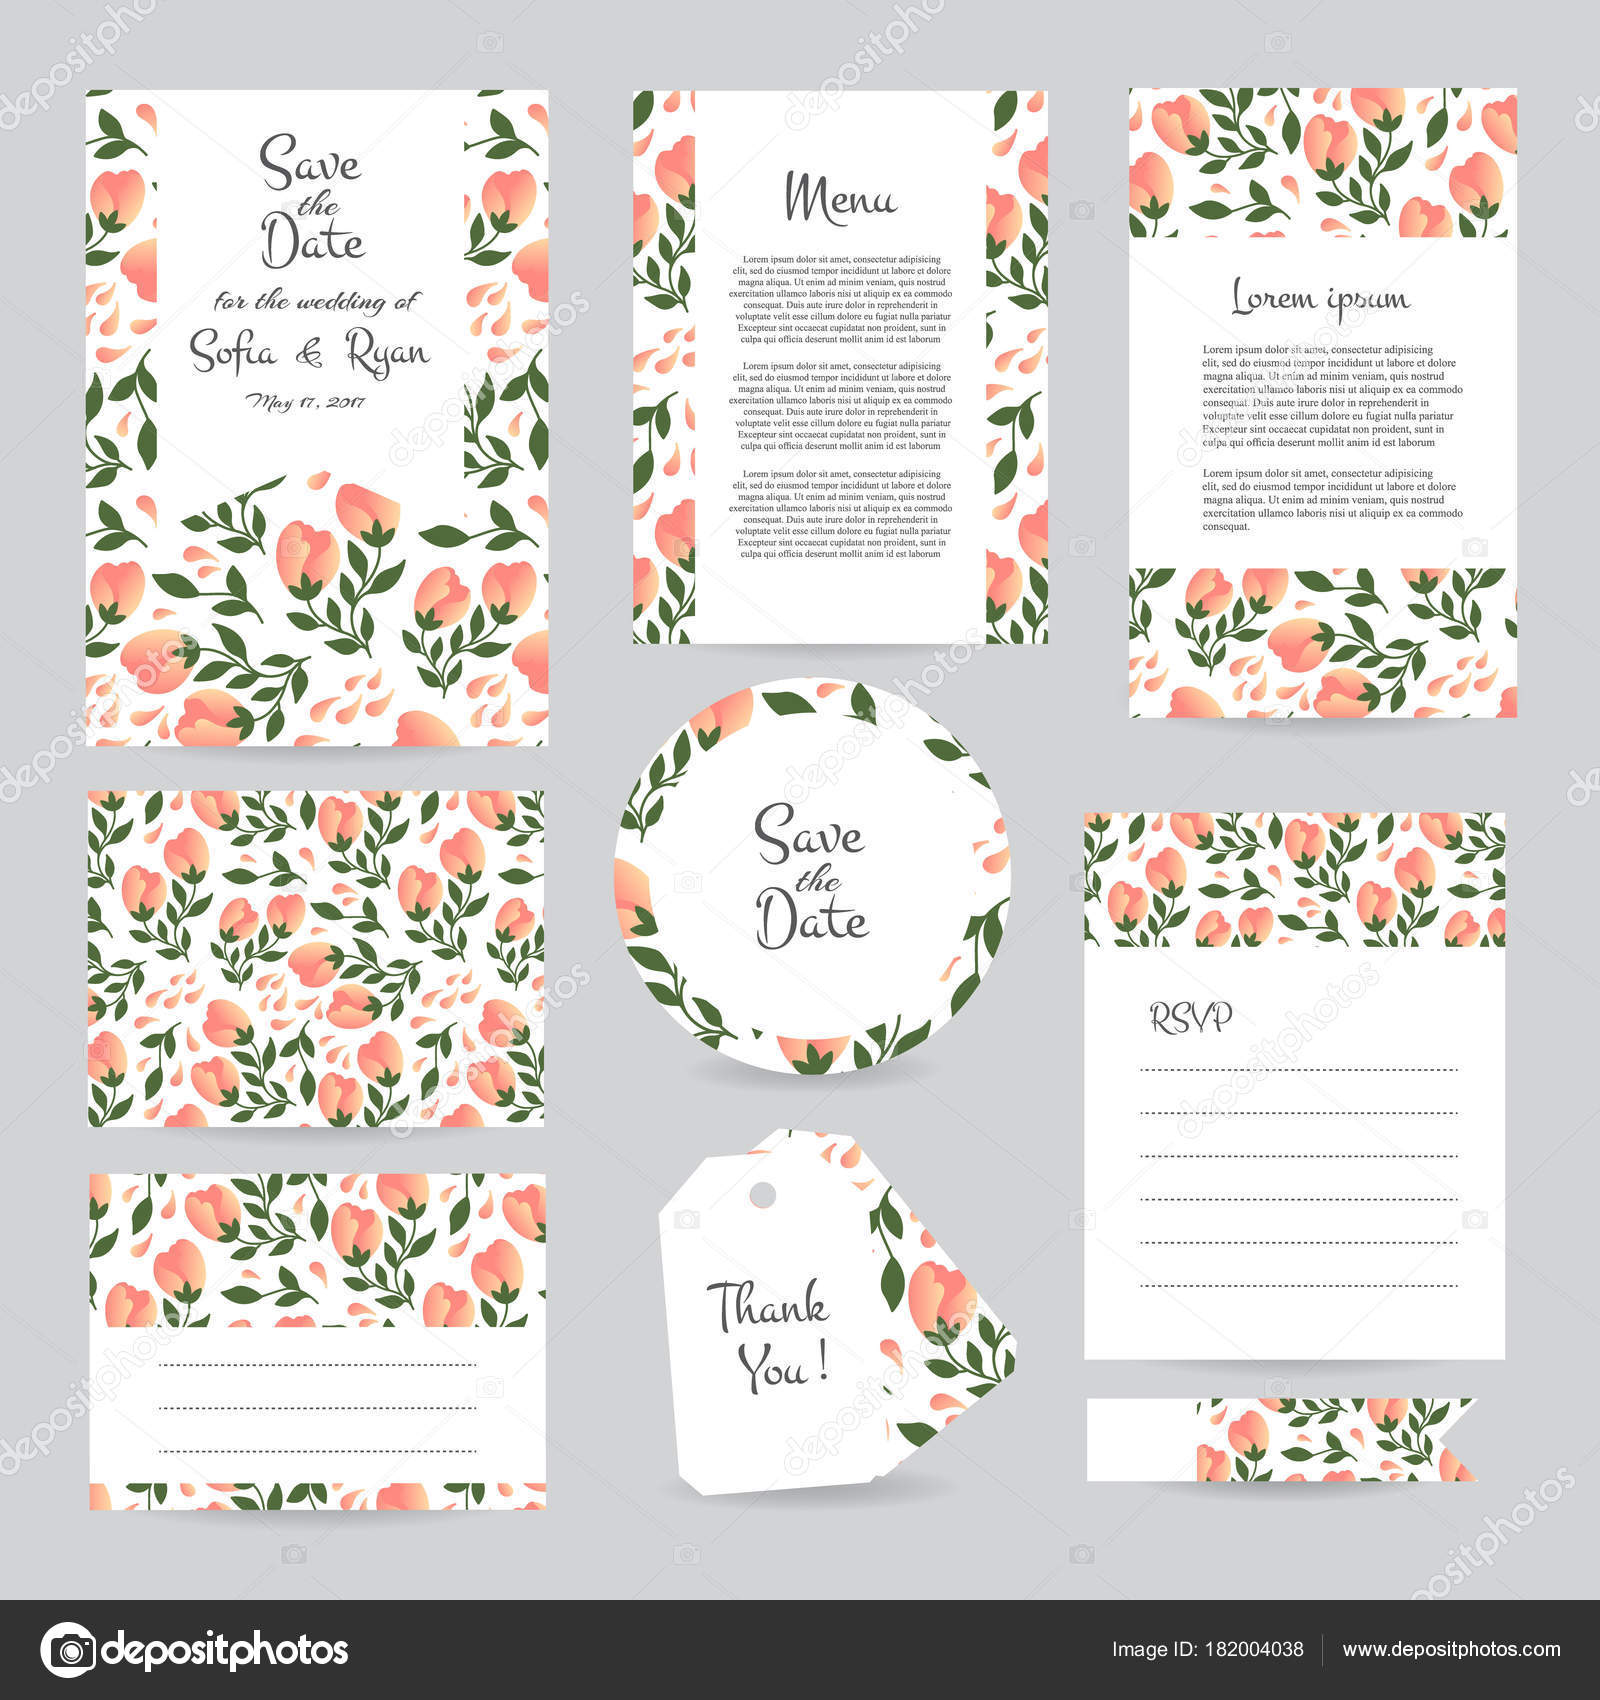 Vector Gentle Wedding Cards Template Flower Design Invitation Date